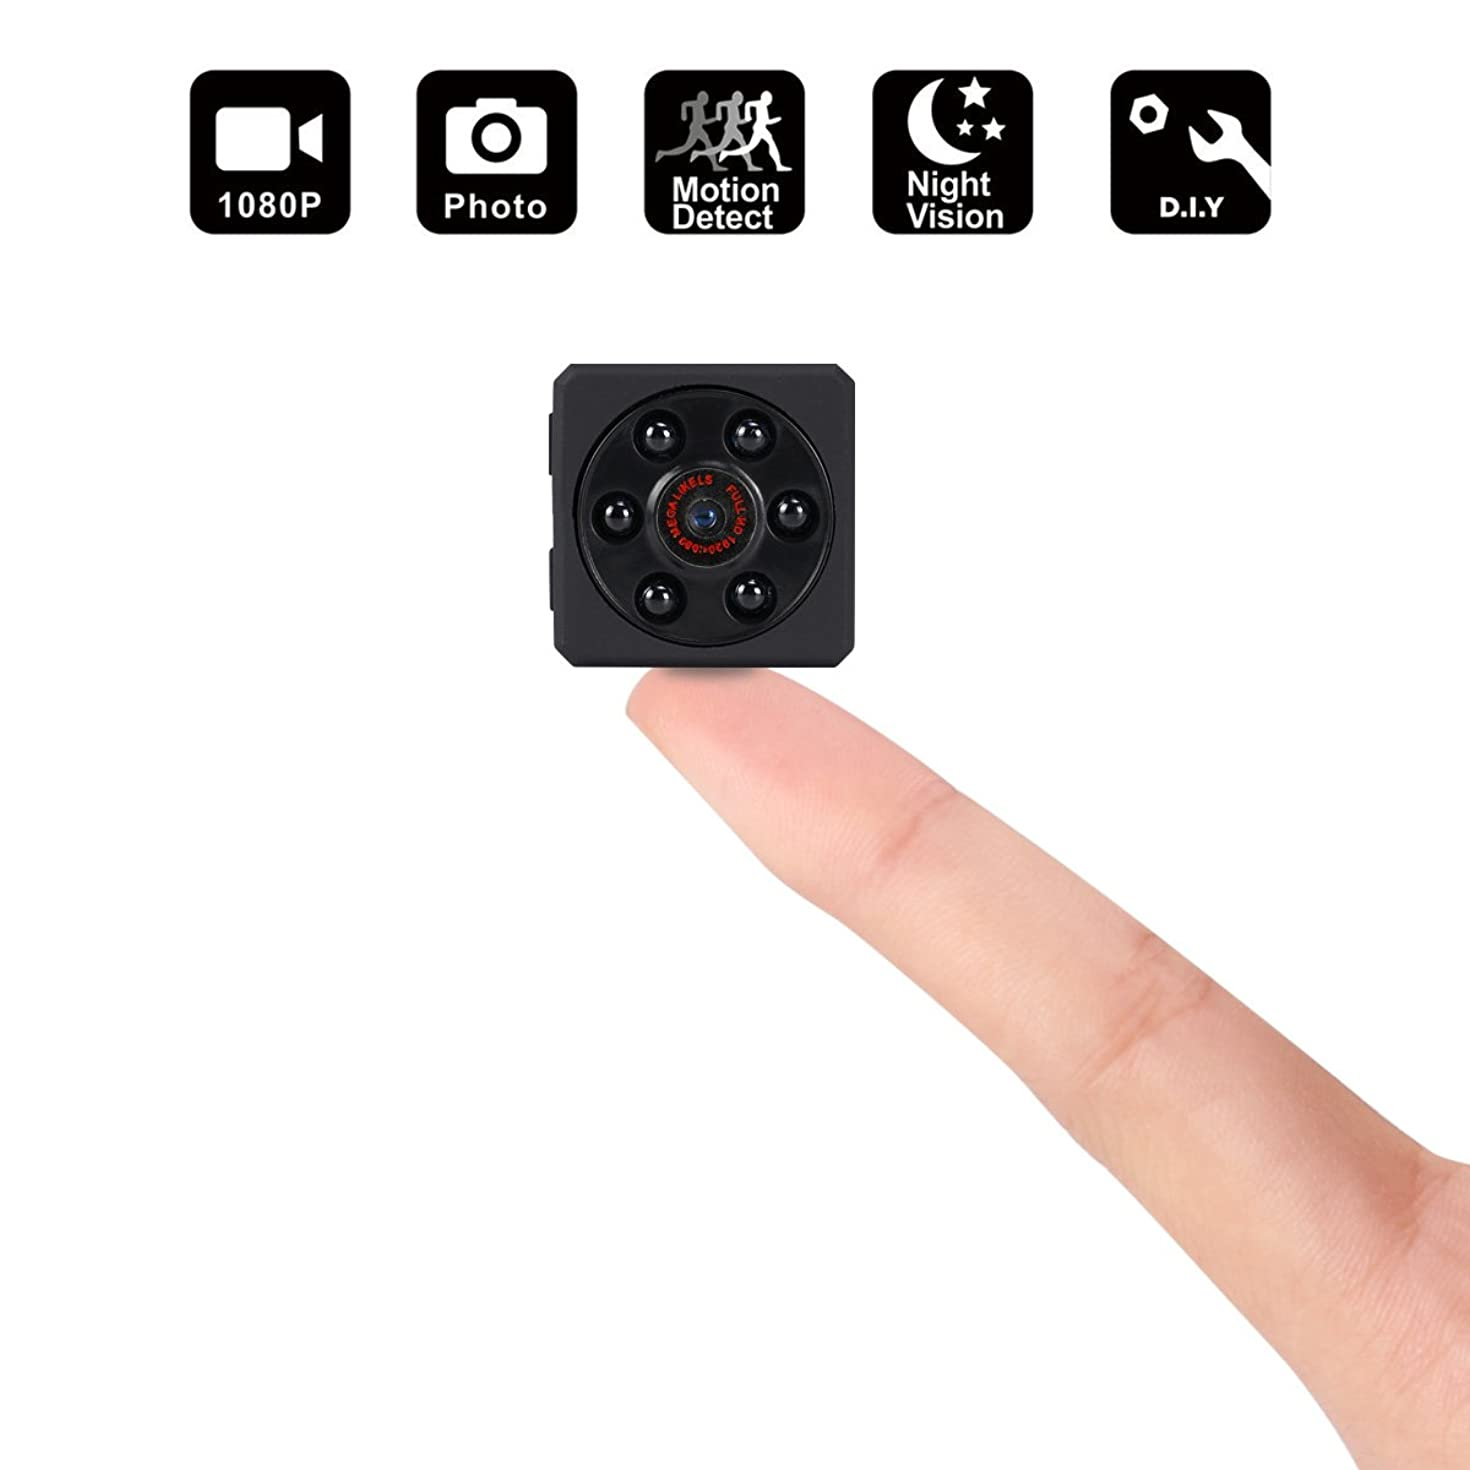 Mini Spy Hidden Camera,1080P Portable Small HD Nanny Cam Security System with Motion Detection,Infrared Night Vision,Suitable for Home Car Drone Office,Maximum Support 32GB TF Card